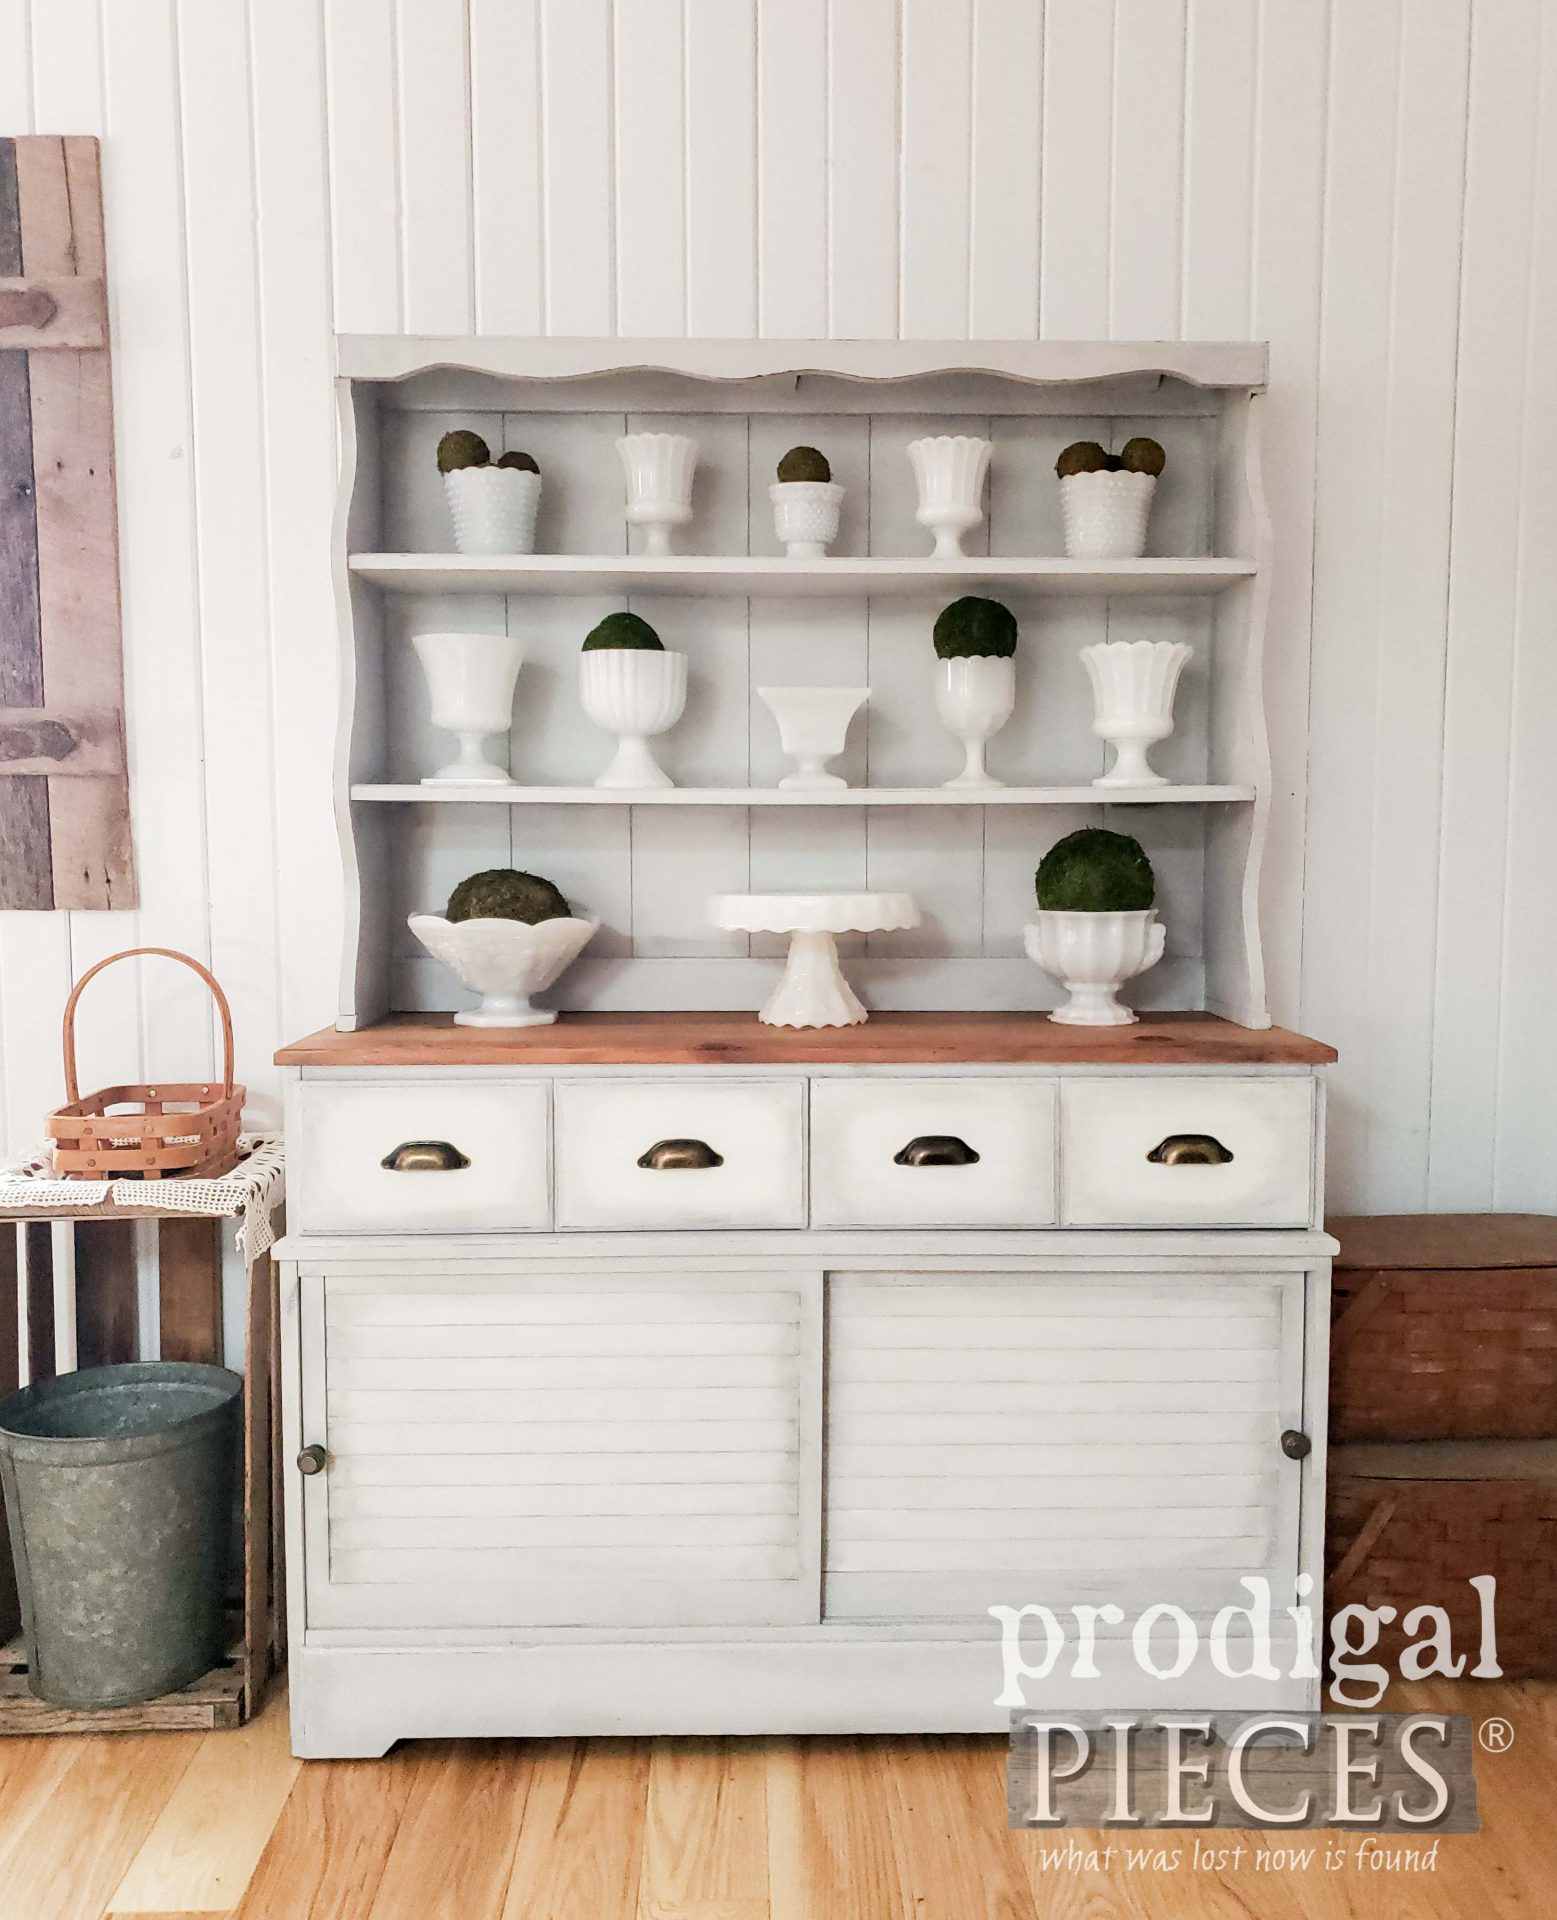 Beautiful Farmhouse Hutch Makeover by Larissa of Prodigal Pieces | Details at prodigalpieces.com #prodigalpieces #farmhouse #home #furniture #homedecor #diy